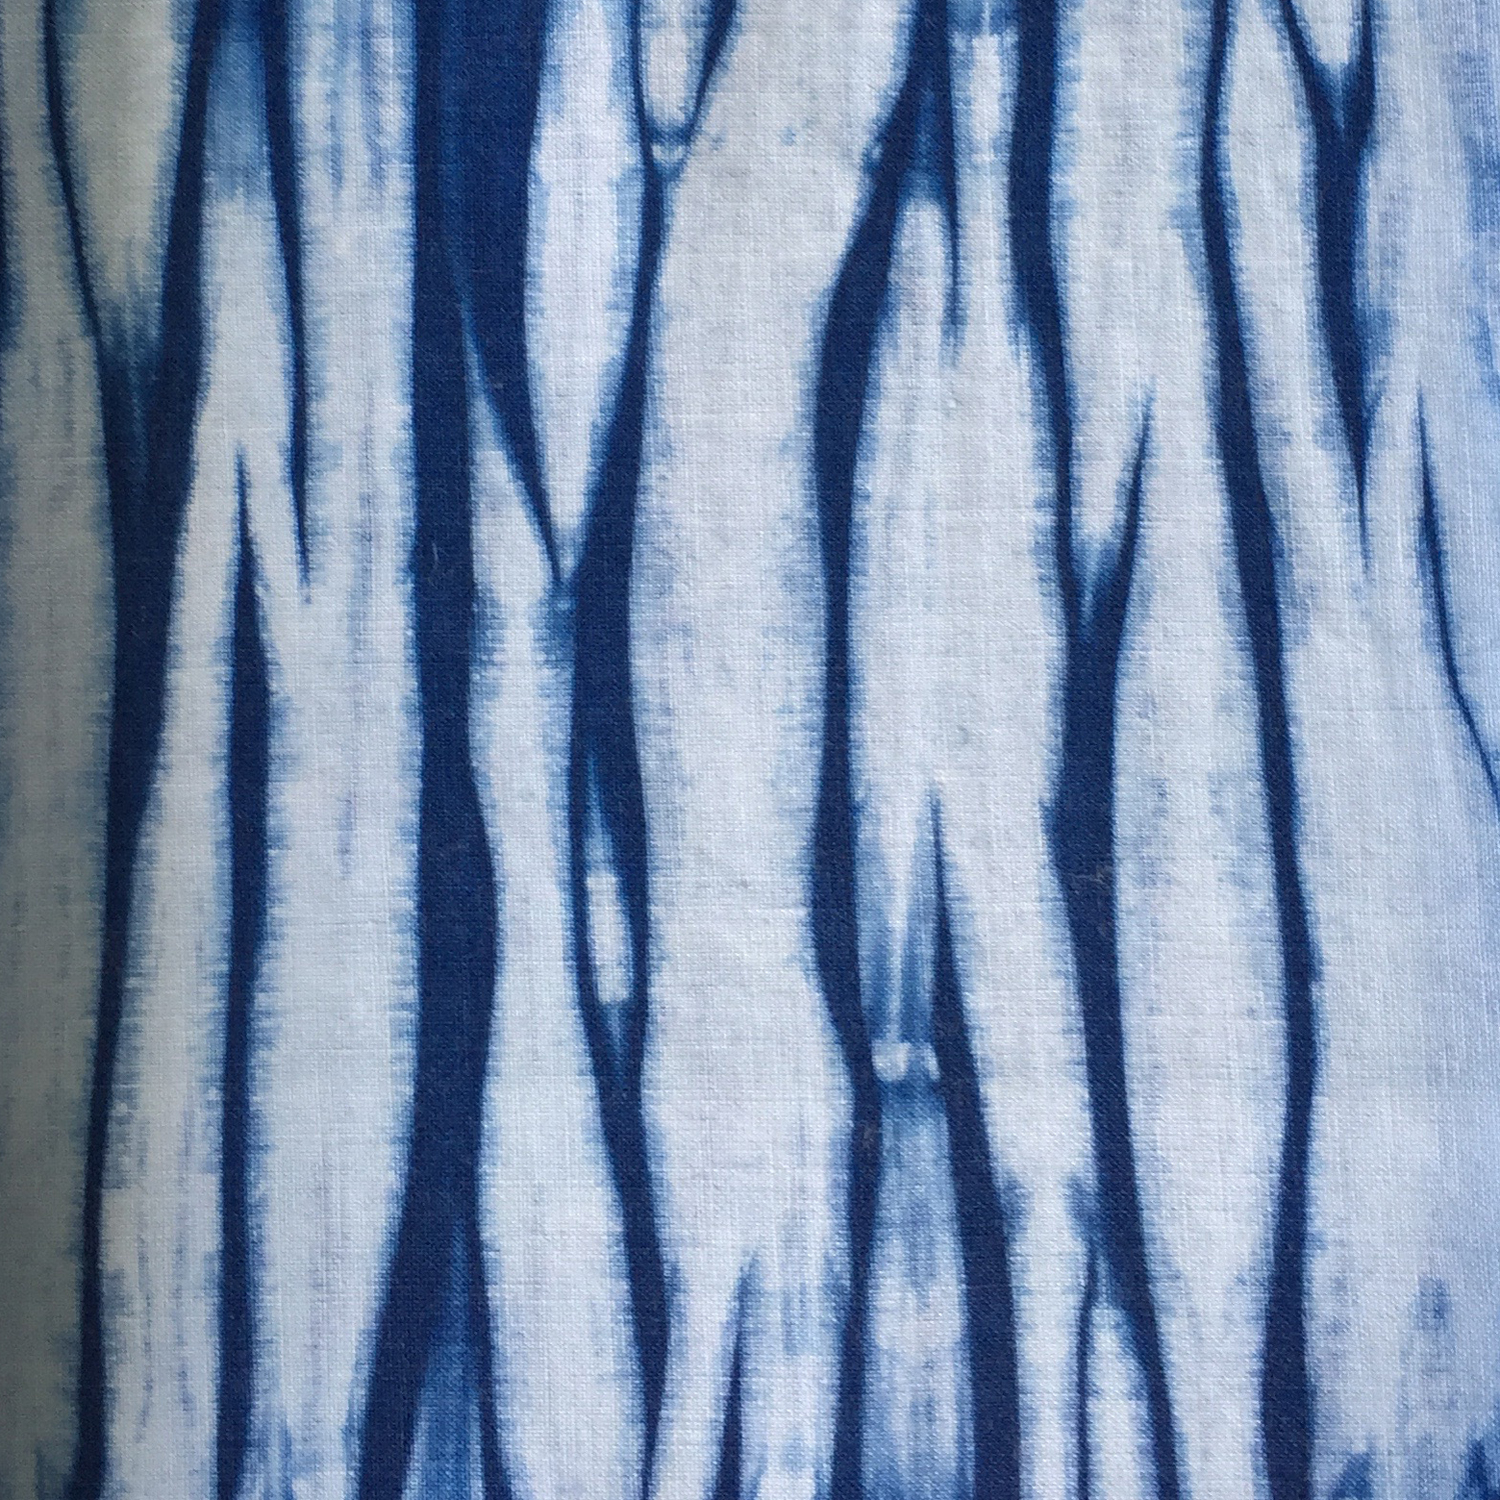 arashi stripes indigo for gallery.jpg